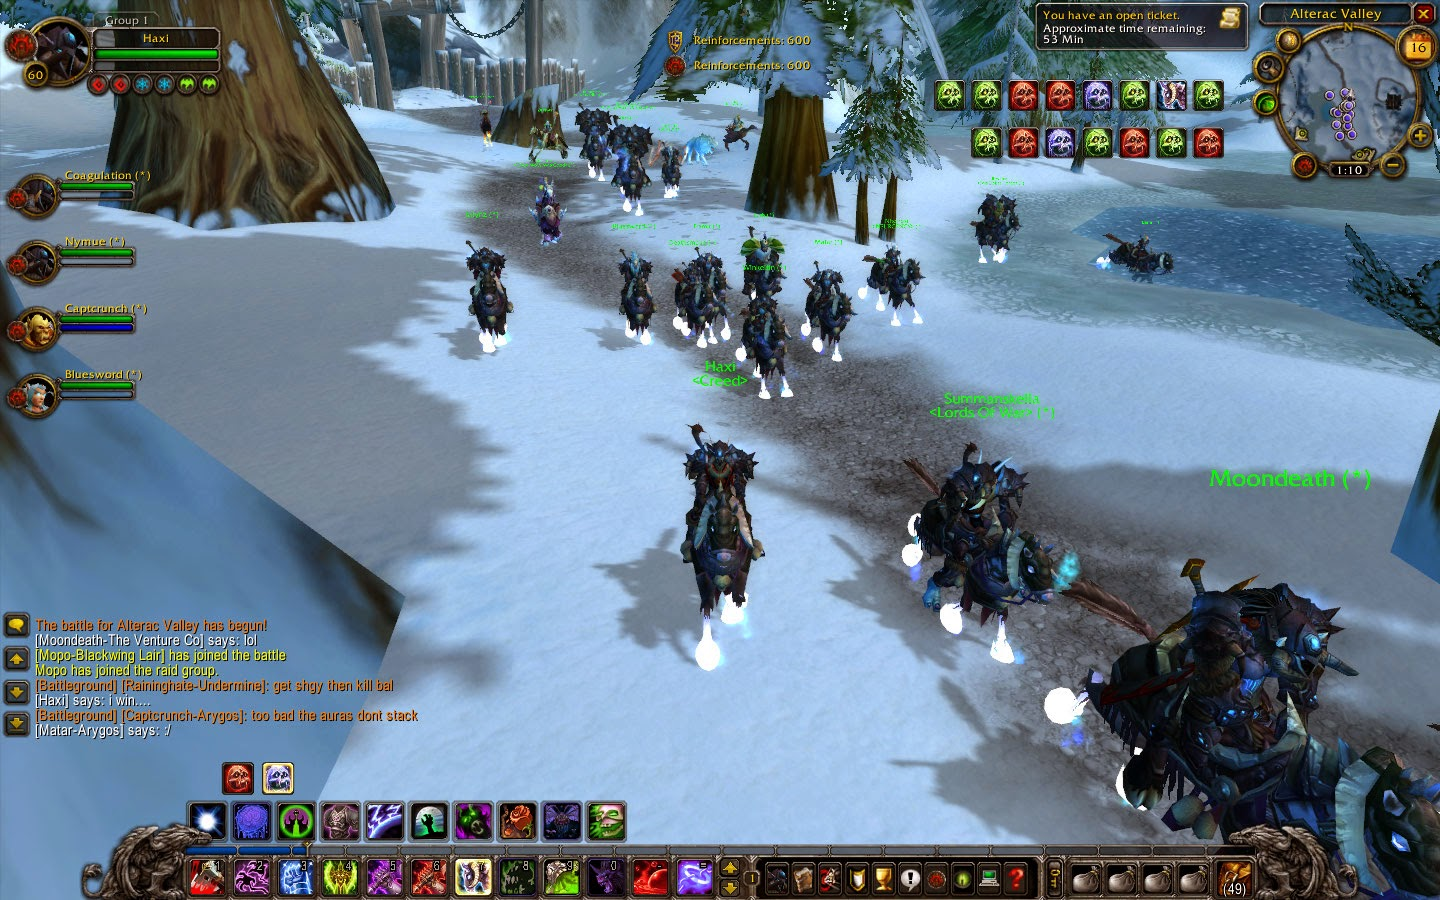 World of Warcraft Screenshot DK